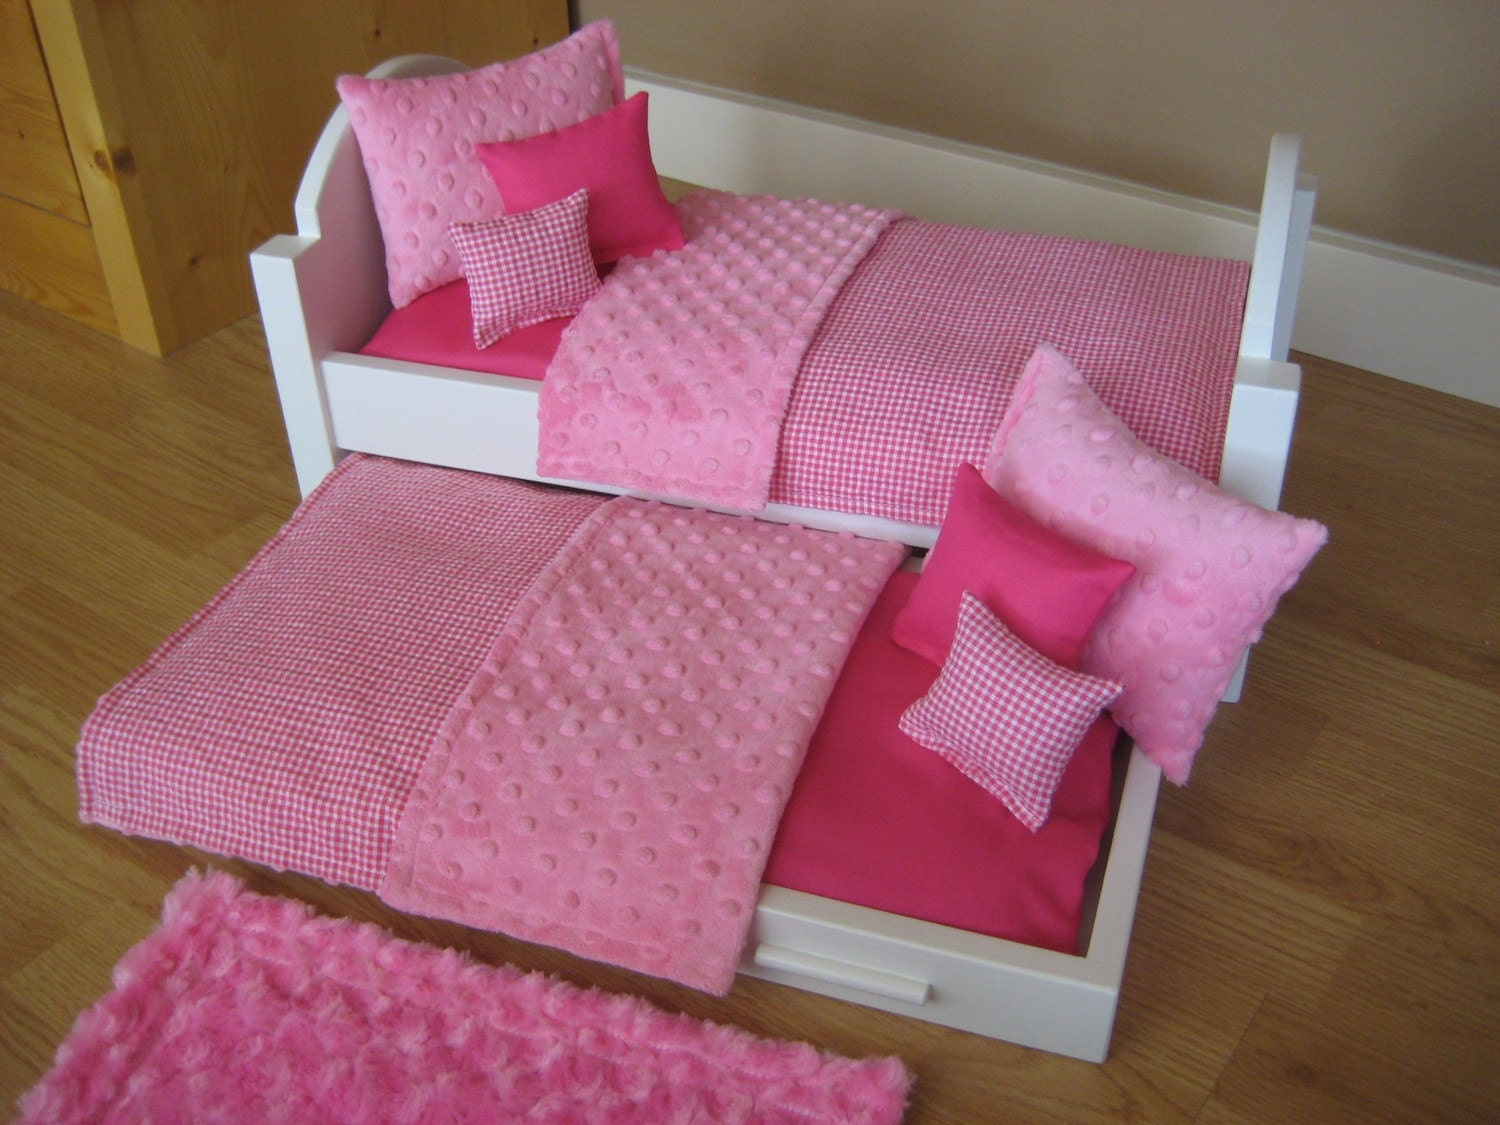 American Girl Doll Bed Trundle Bed 18 Inch Doll Furniture With